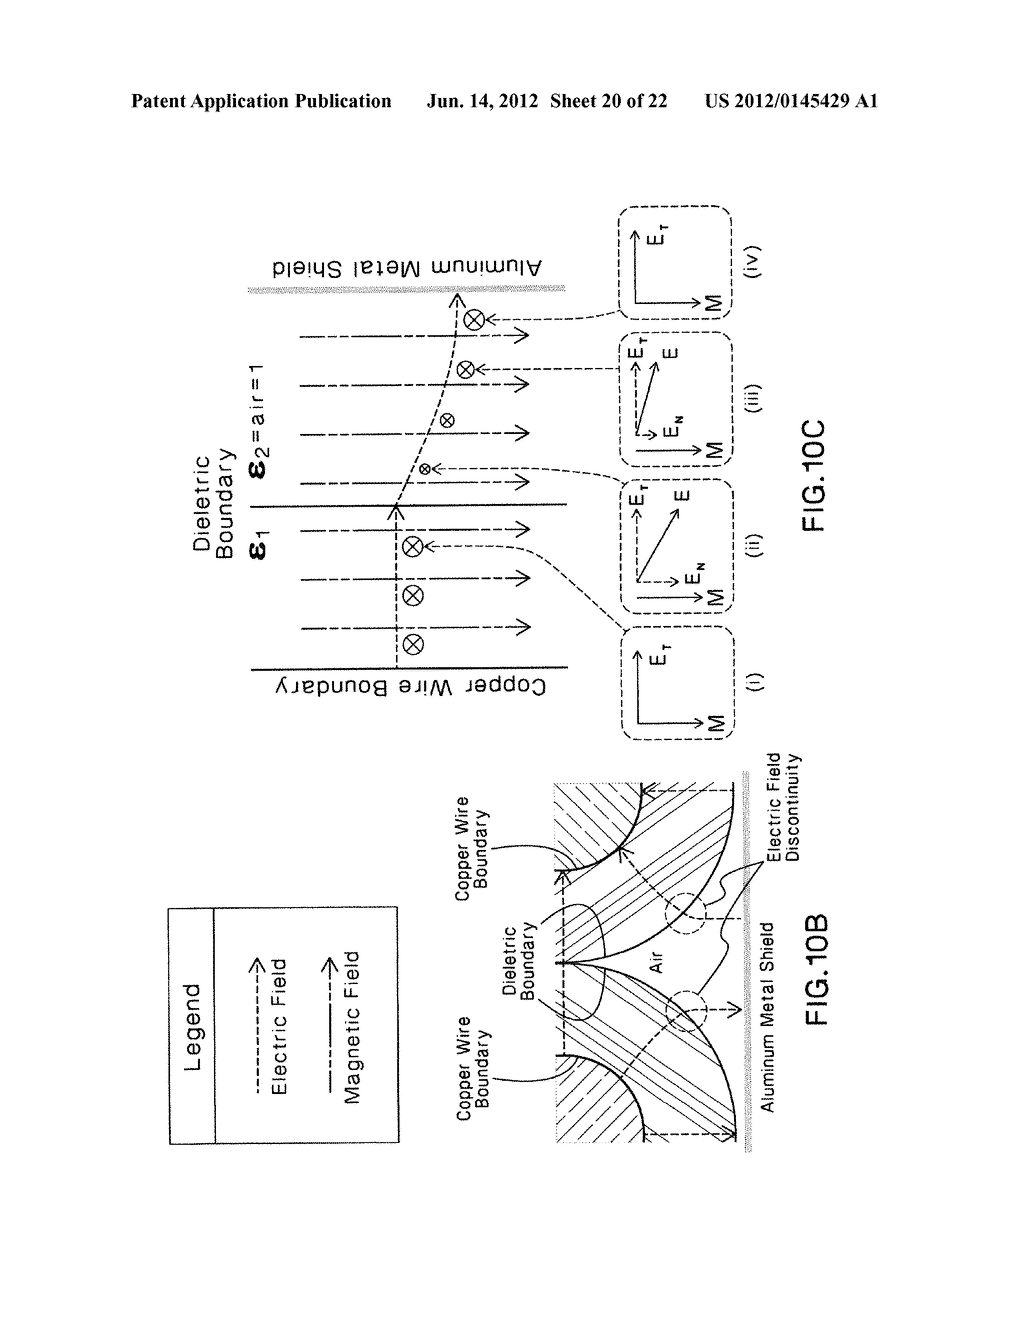 Twinax Cable Design For Improved Electrical Performance Diagram Copper Wire Schematic And Image 21